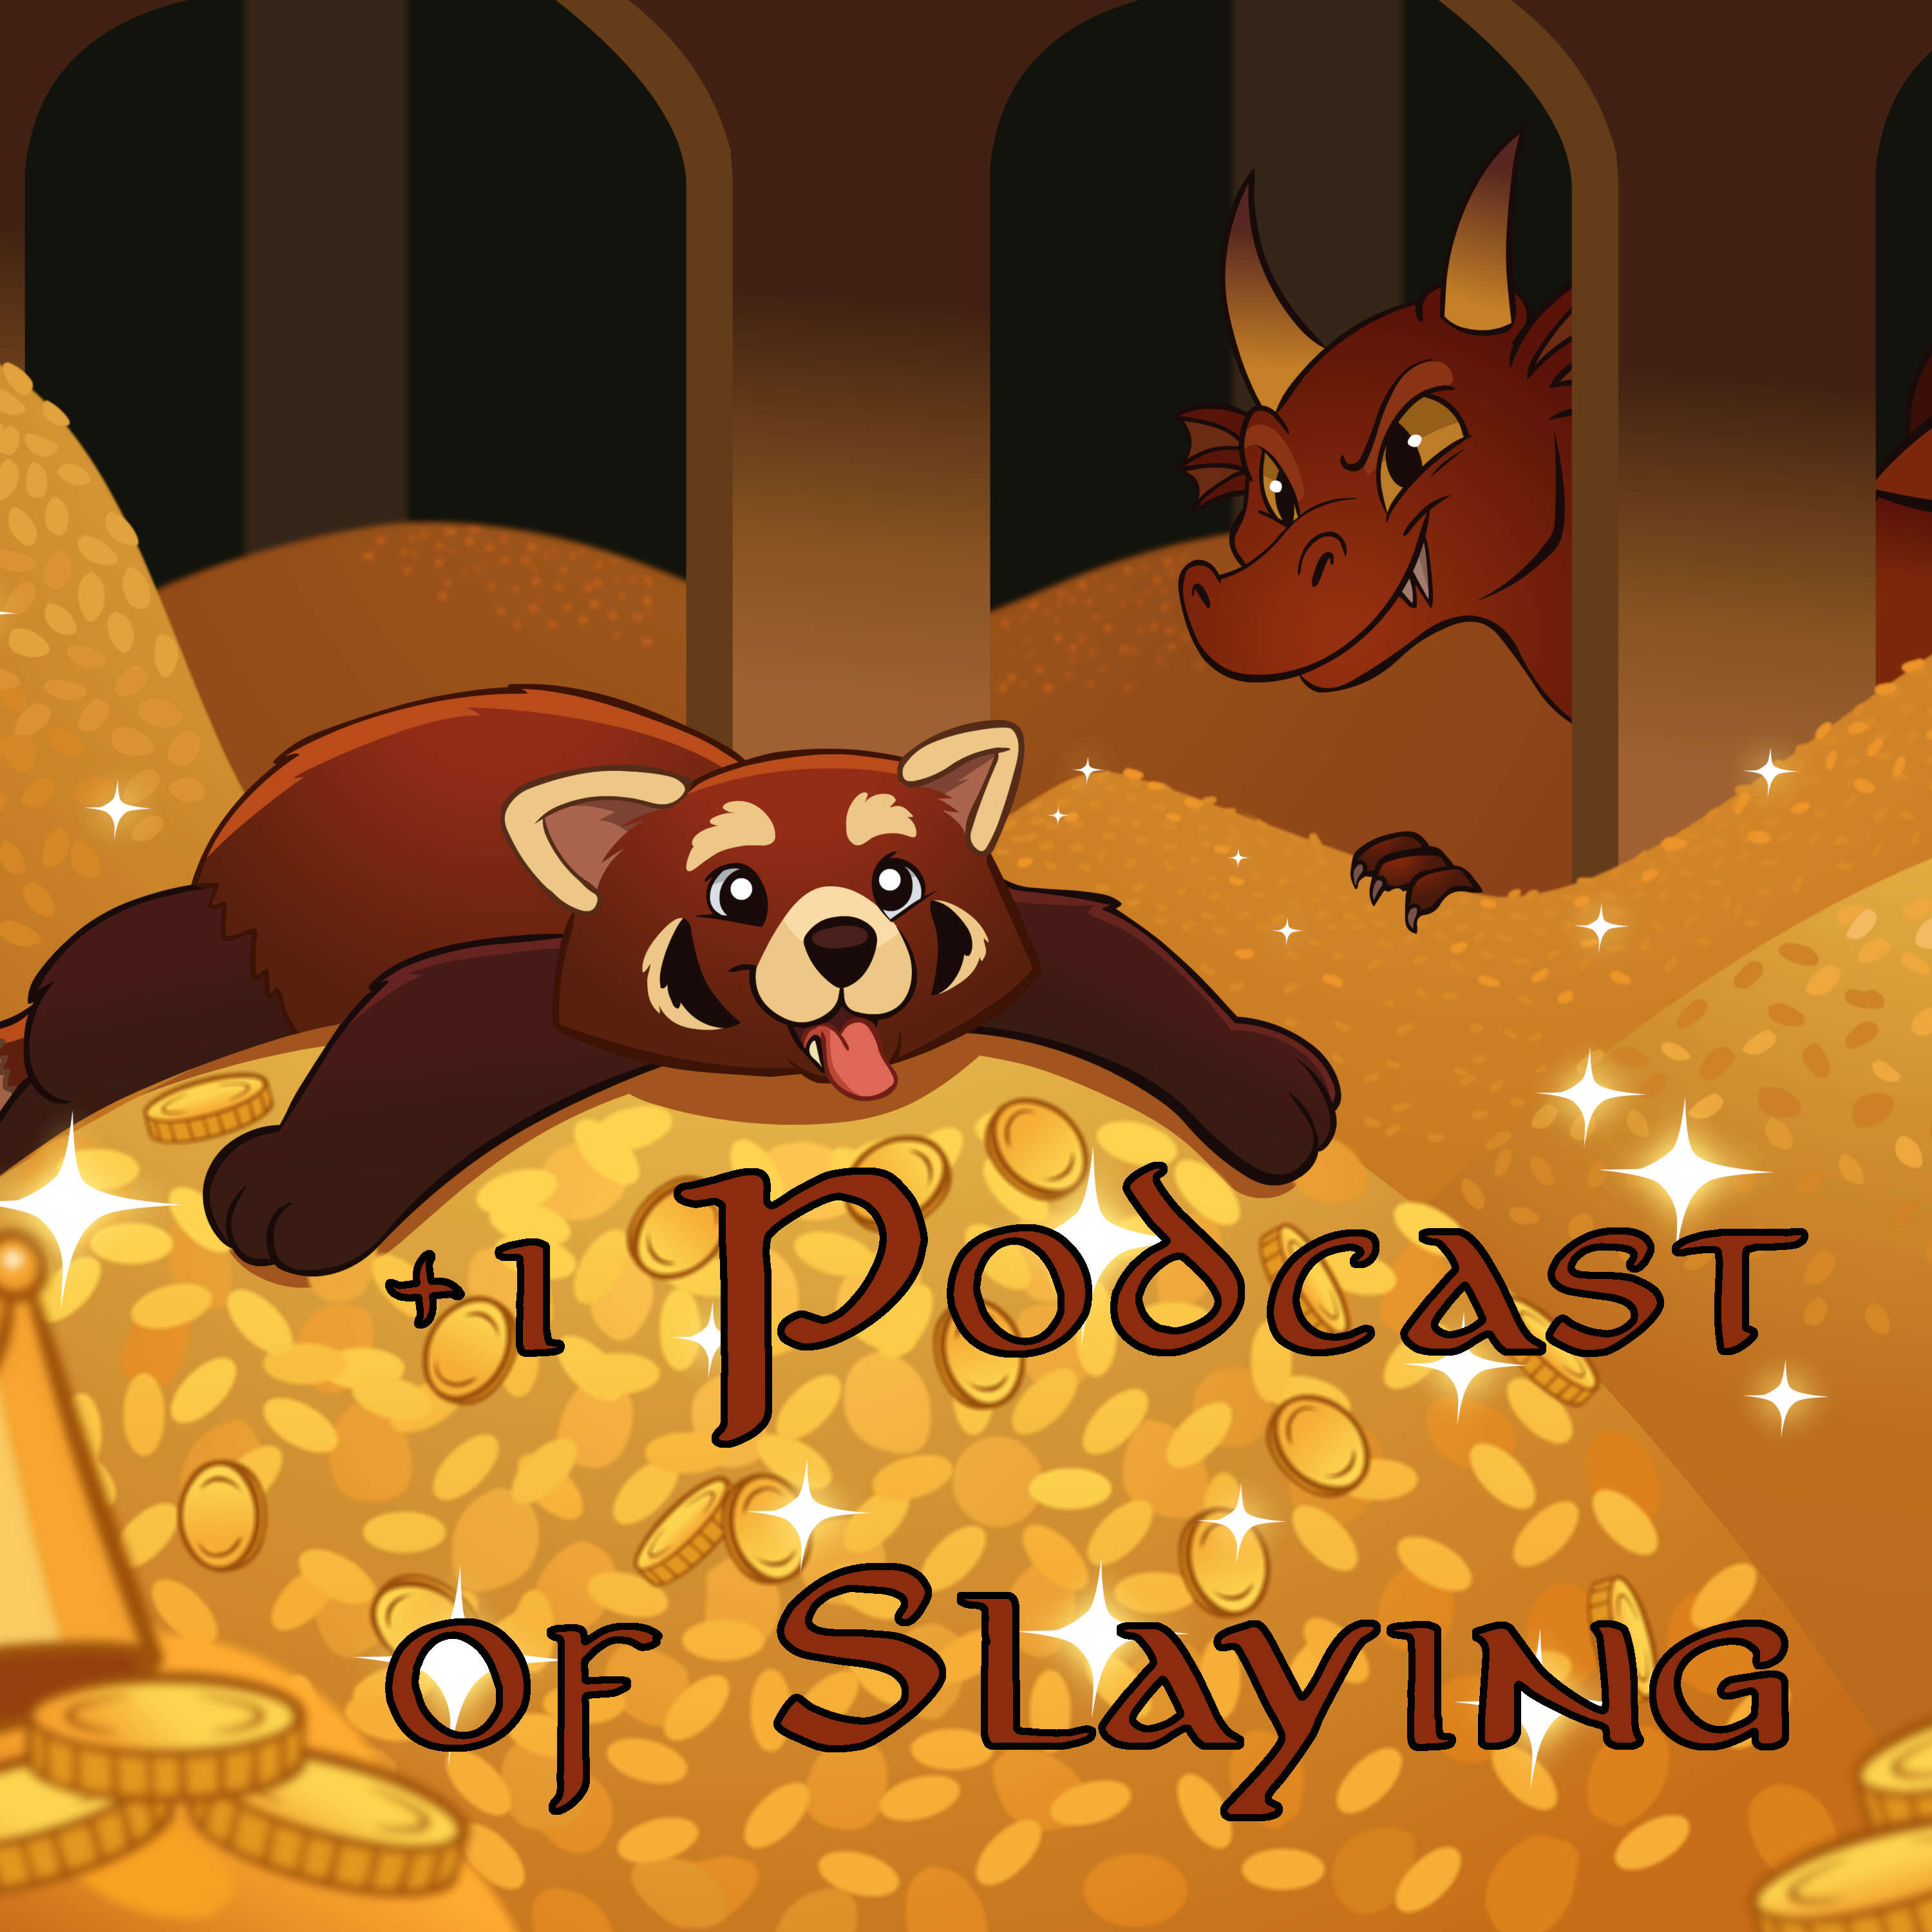 +1 Podcast of Slaying